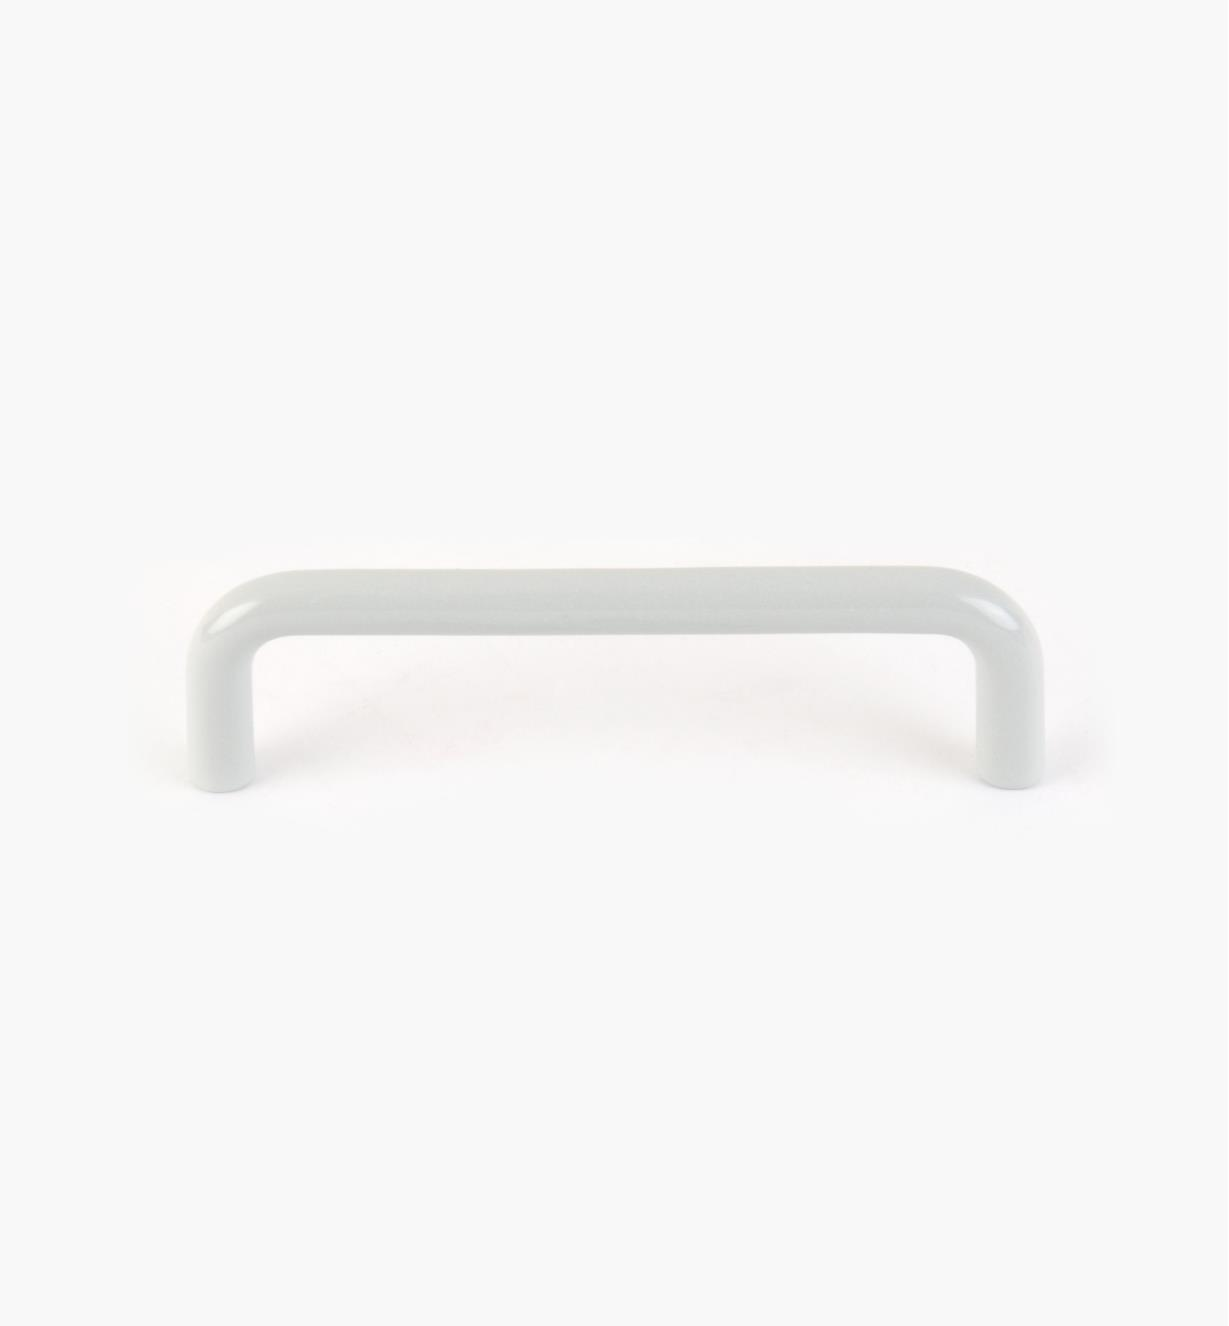 03W2351 - 96mm Gray Wire Pull, pkg of 10